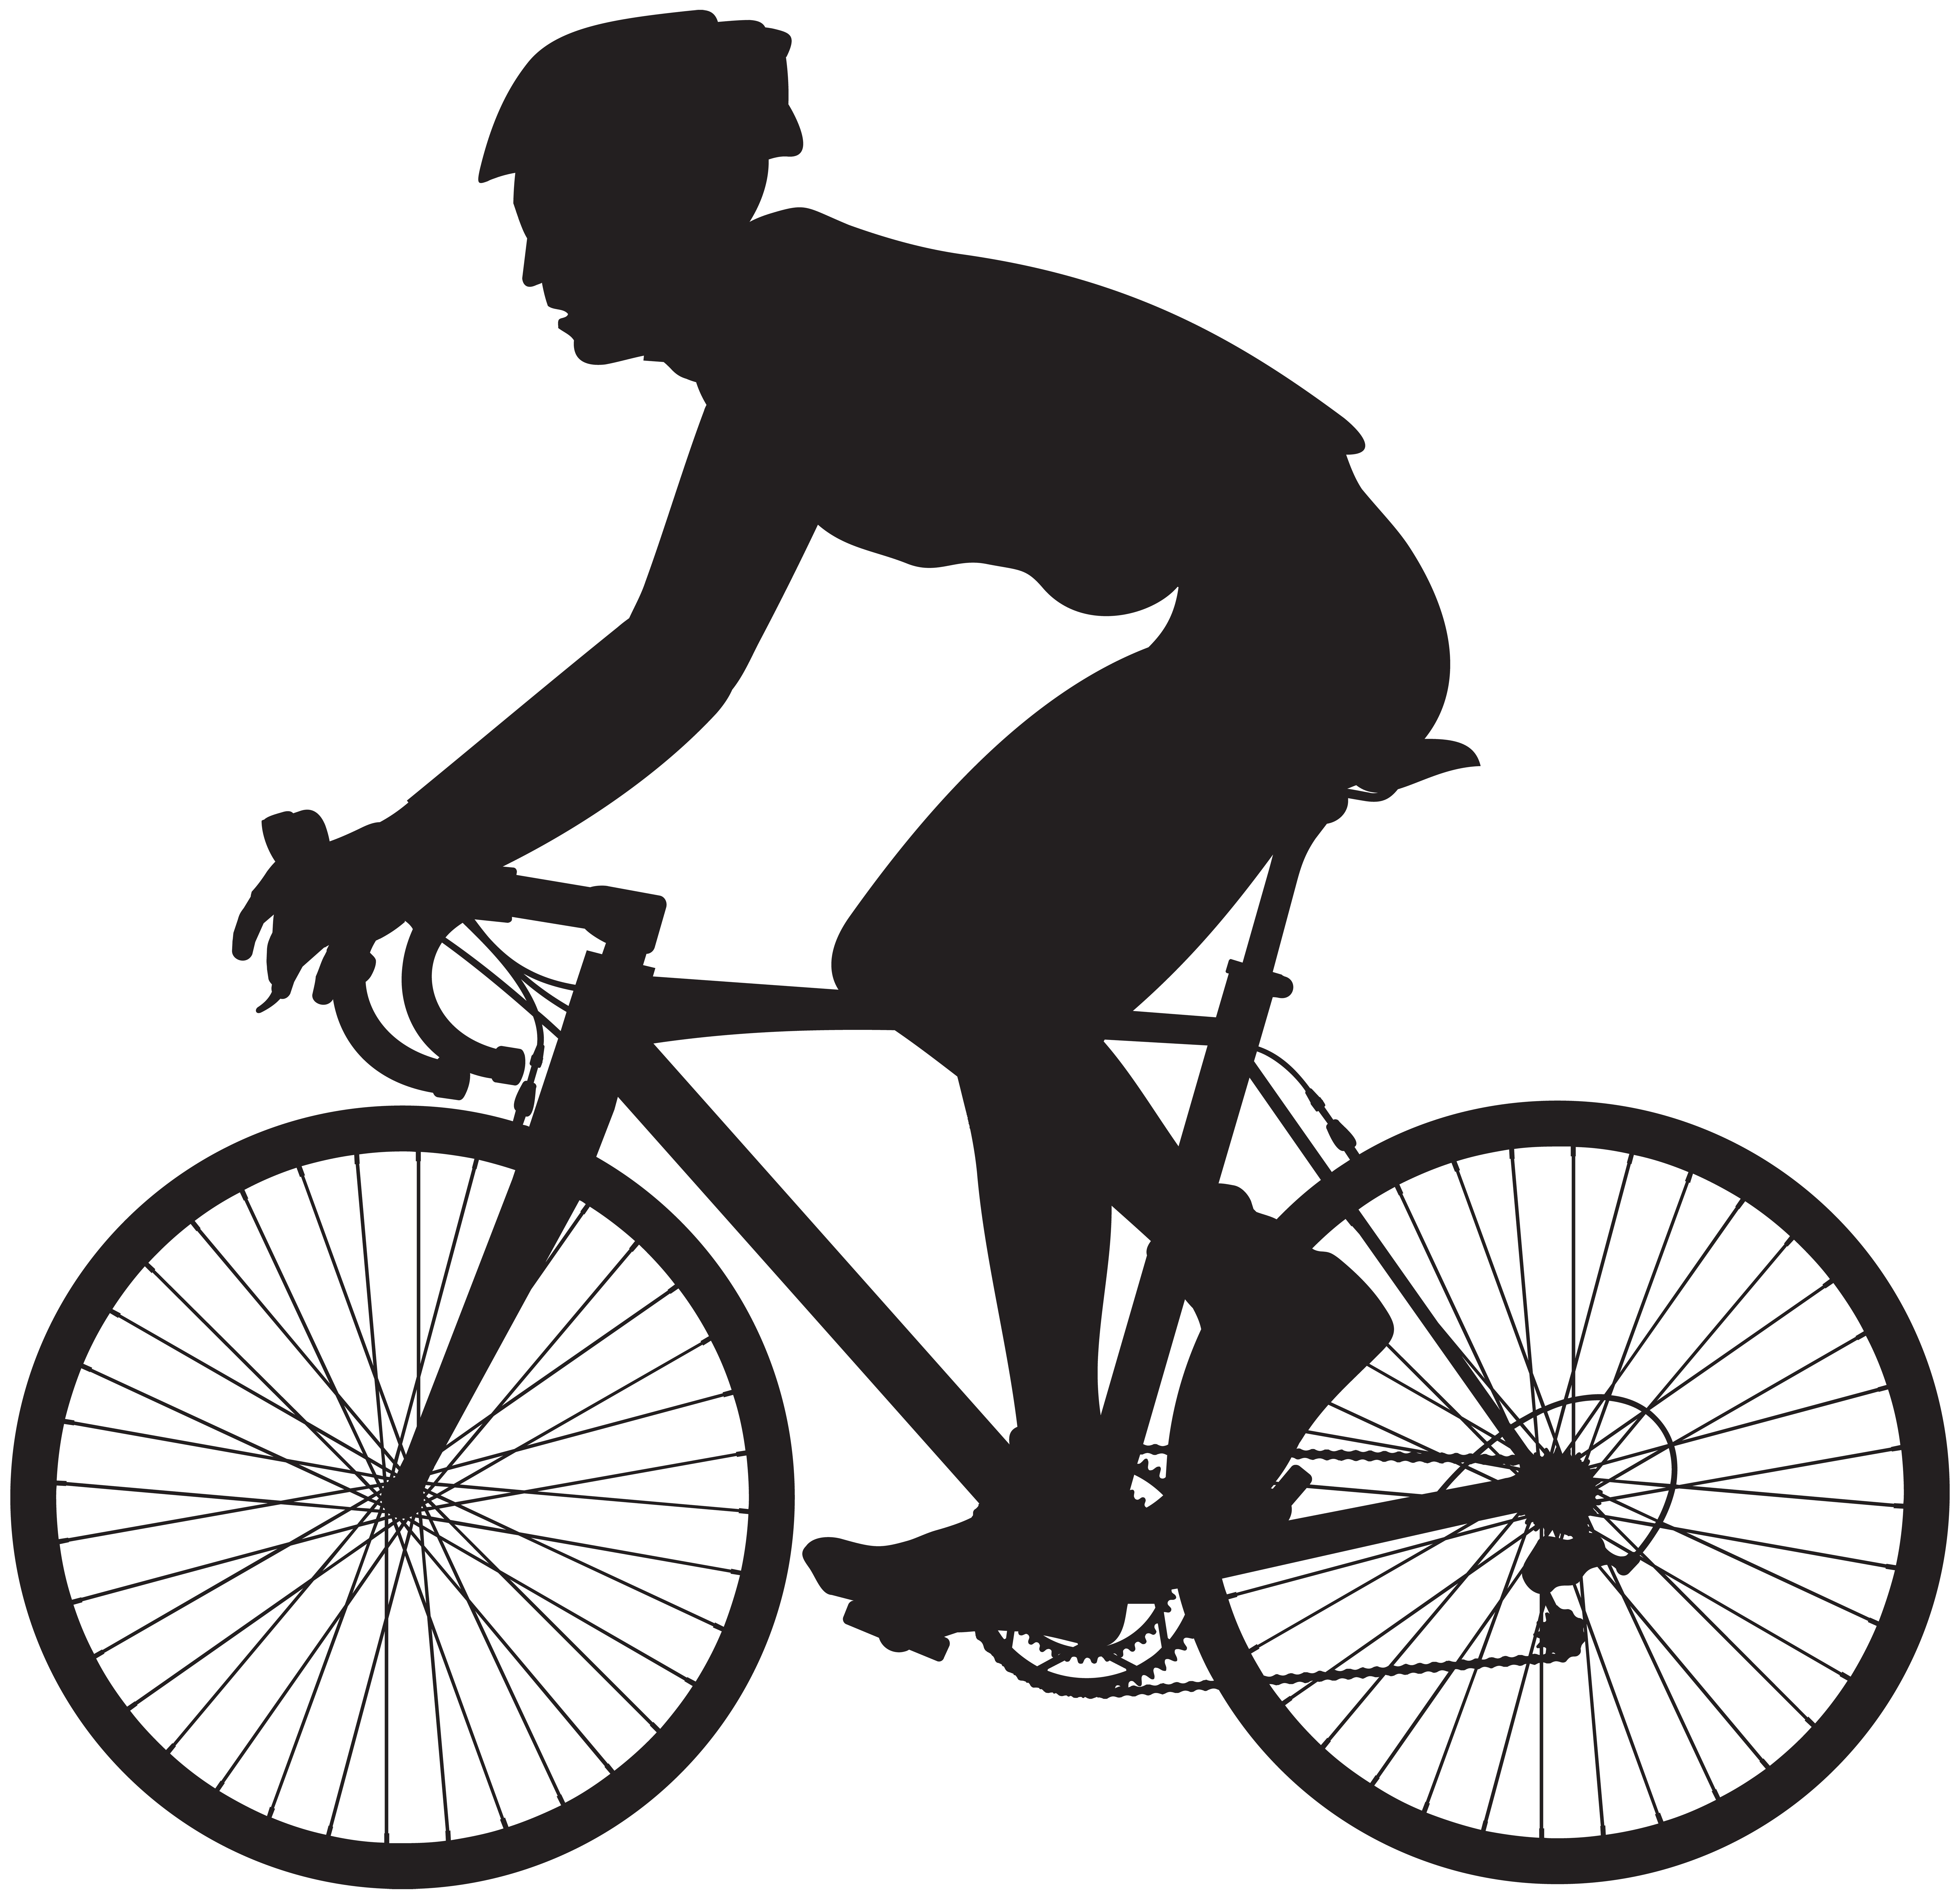 Cycle clipart female cyclist. Cycling racing bicycle wheels